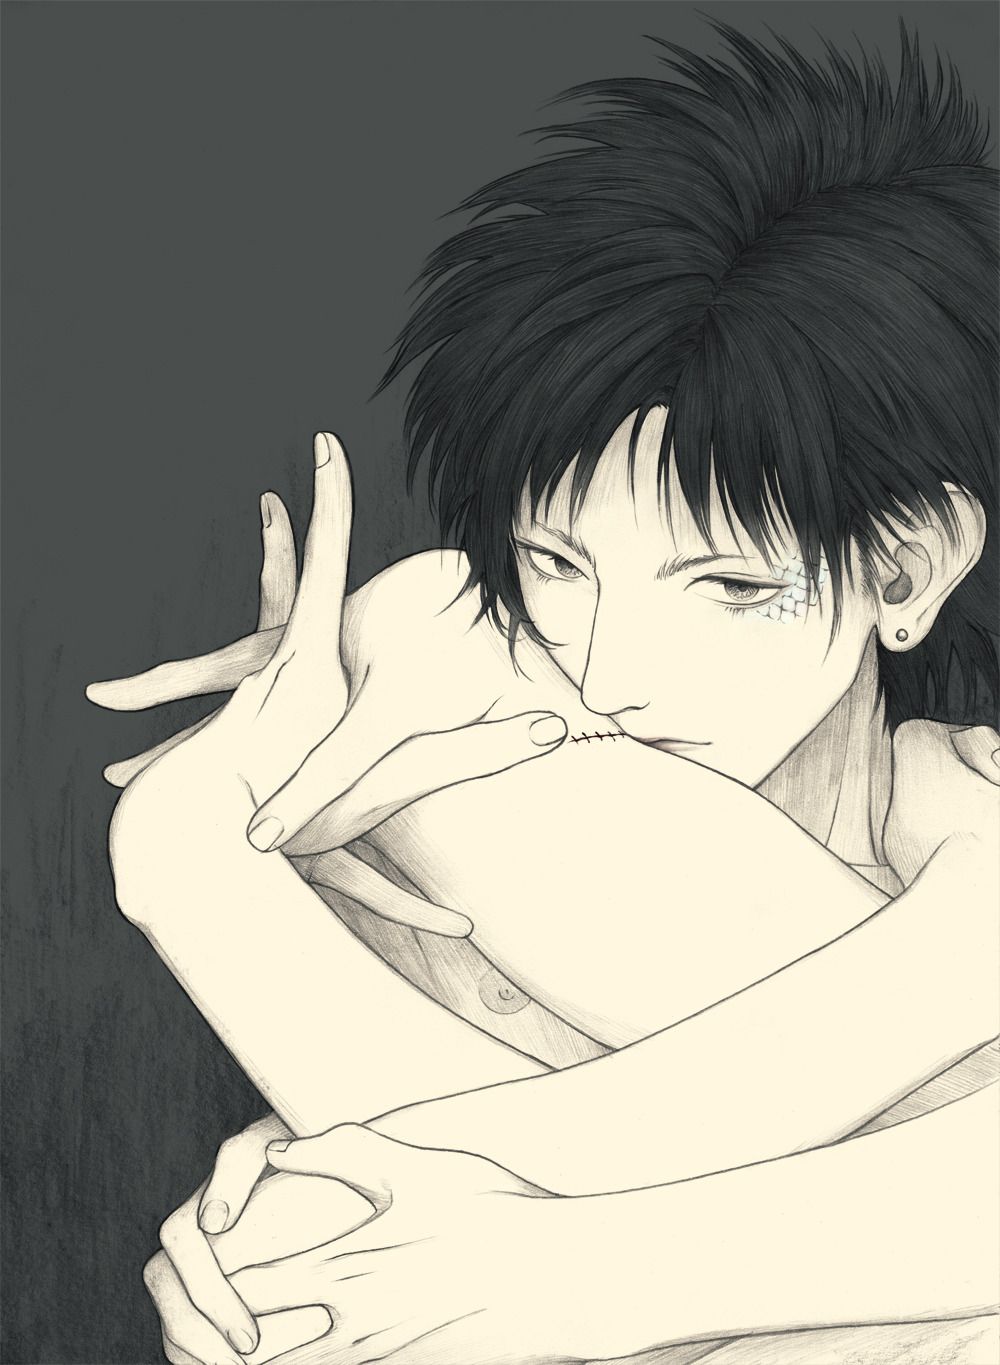 Ren from DRAMAtical Murder naked and holding hands black haired anime boy uke DMMd fanart Ren surrealist bishounen art - Touch dramatical-murder-yaoi Uke Scars Ren - fanarts on yaoi-online.com